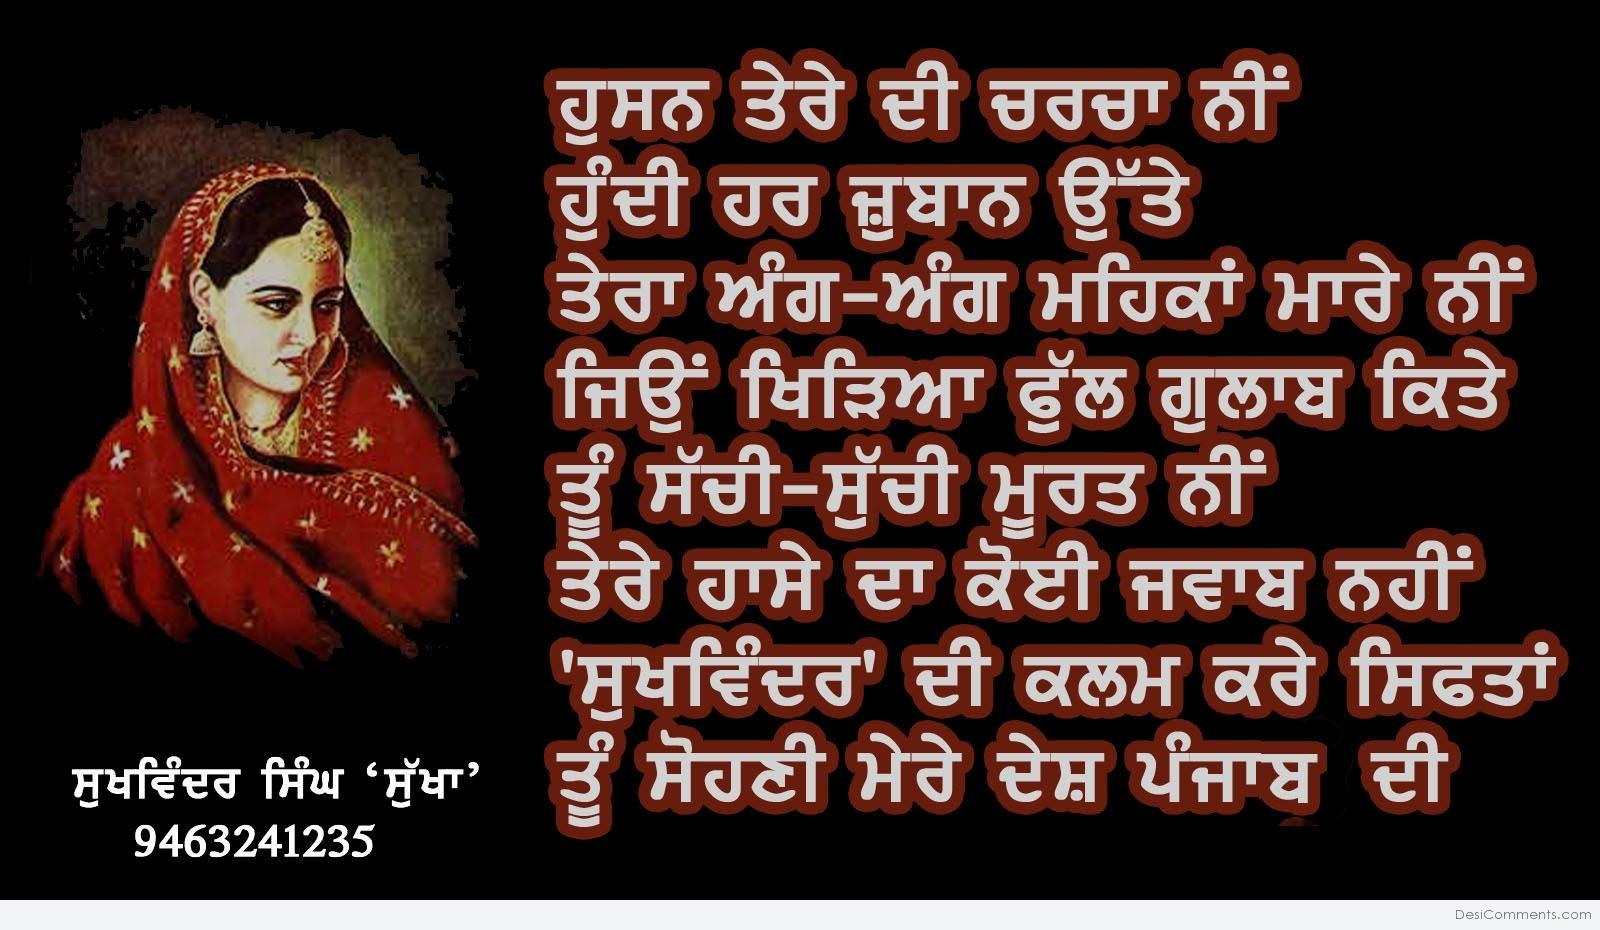 punjabi pictures images graphics page 531